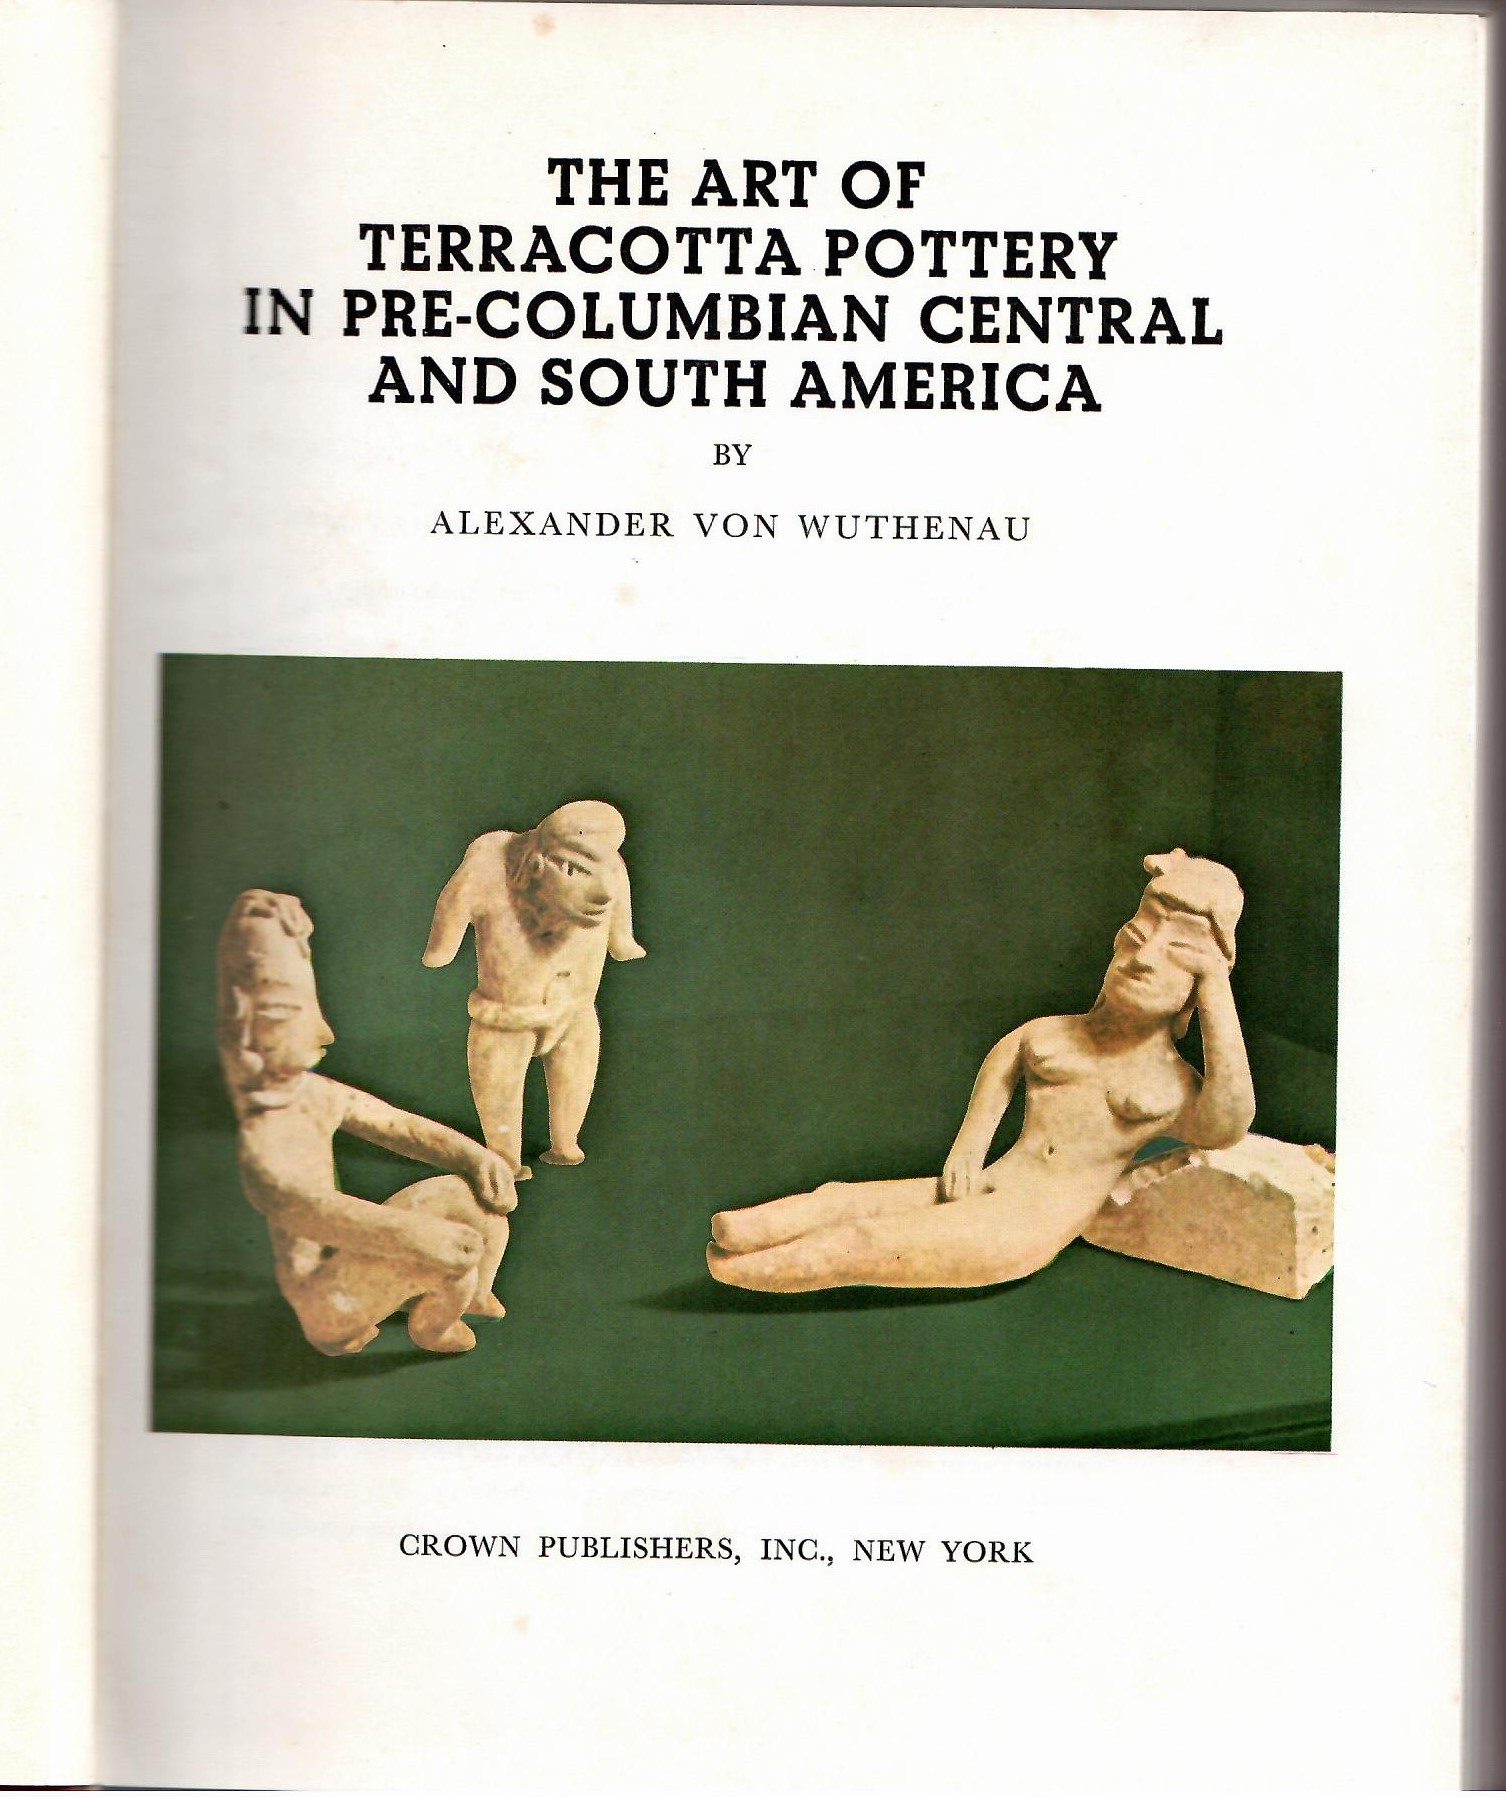 Image for THE ART OF TERRACOTTA POTTERY IN PRE-COLUMBIAN CENTRAL AND SOUTH AMERICA